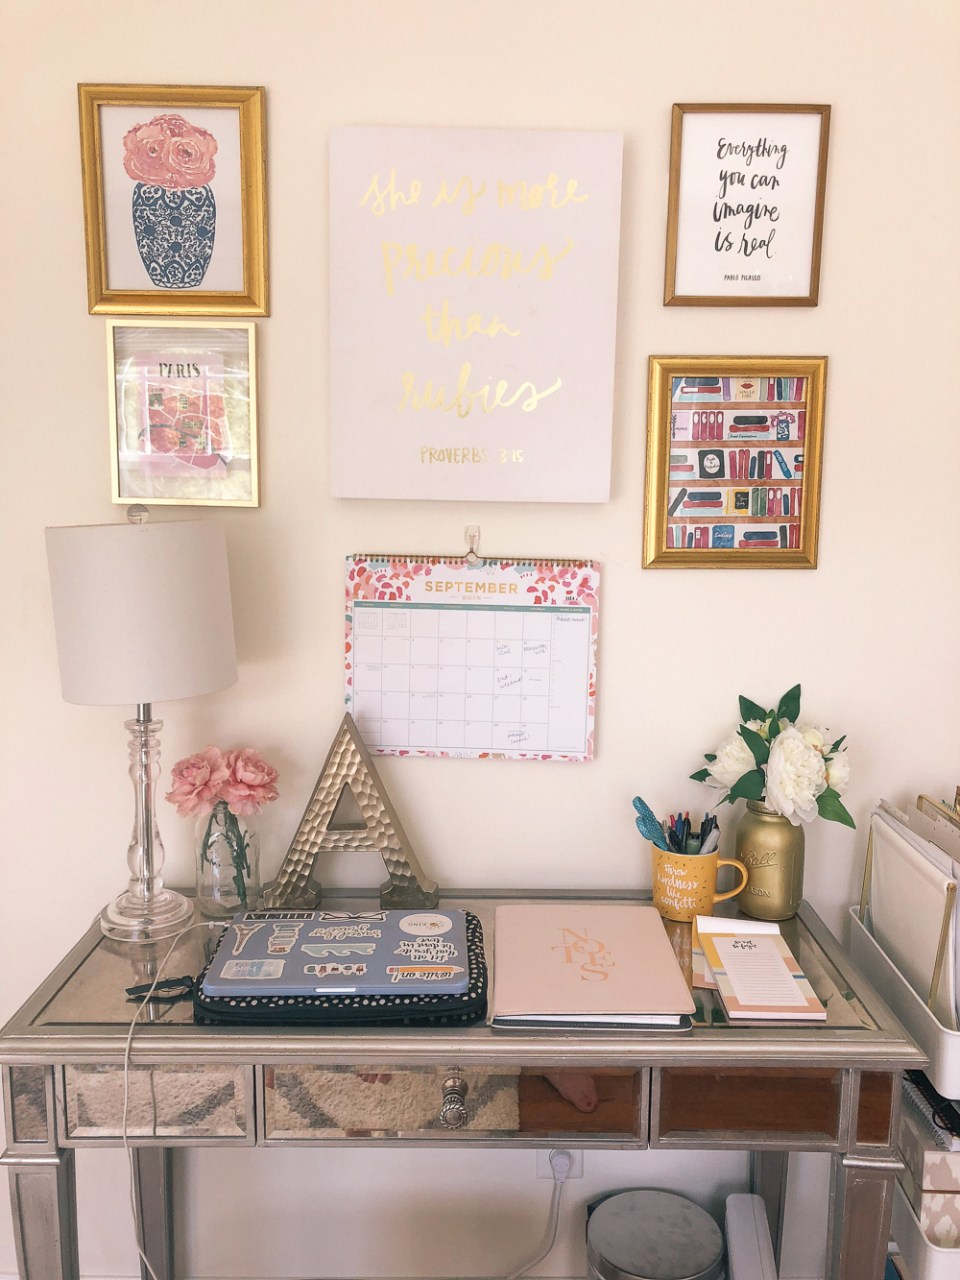 Everything You Need In Your Own College Room at the Honey Scoop - college desk organization, college desk ideas, college desk, college desk decor, college desk organization diy, gallery wall